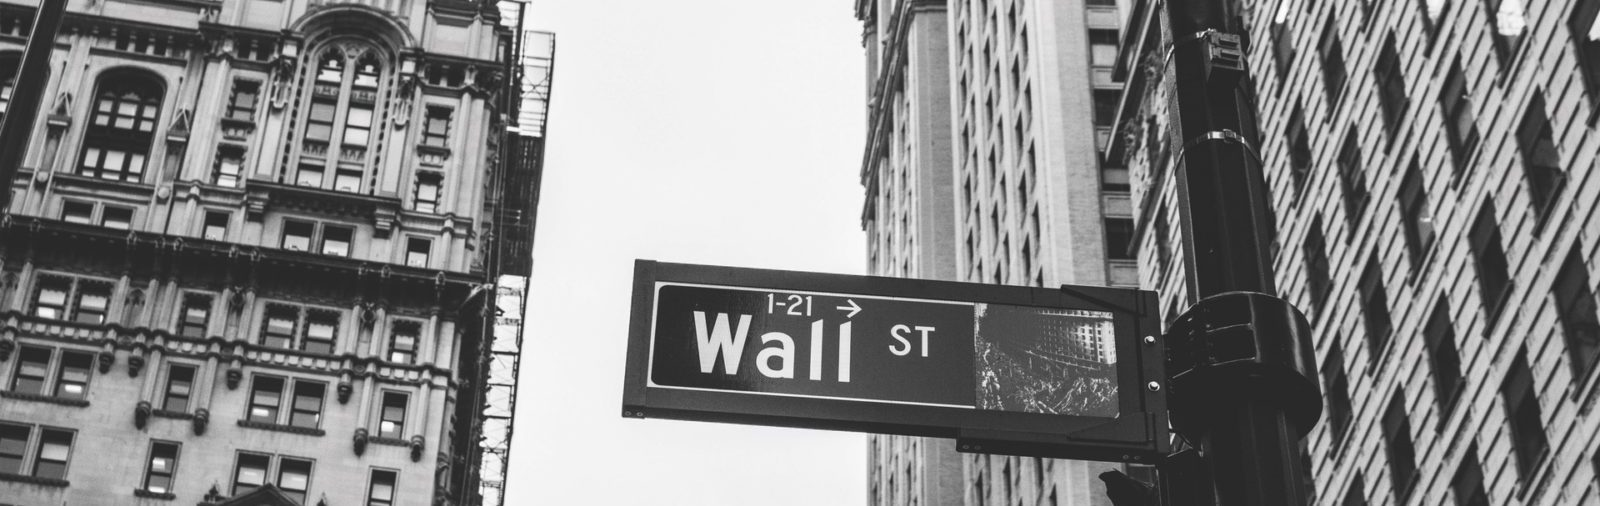 This is the Biggest Concern for Women on Wall Street